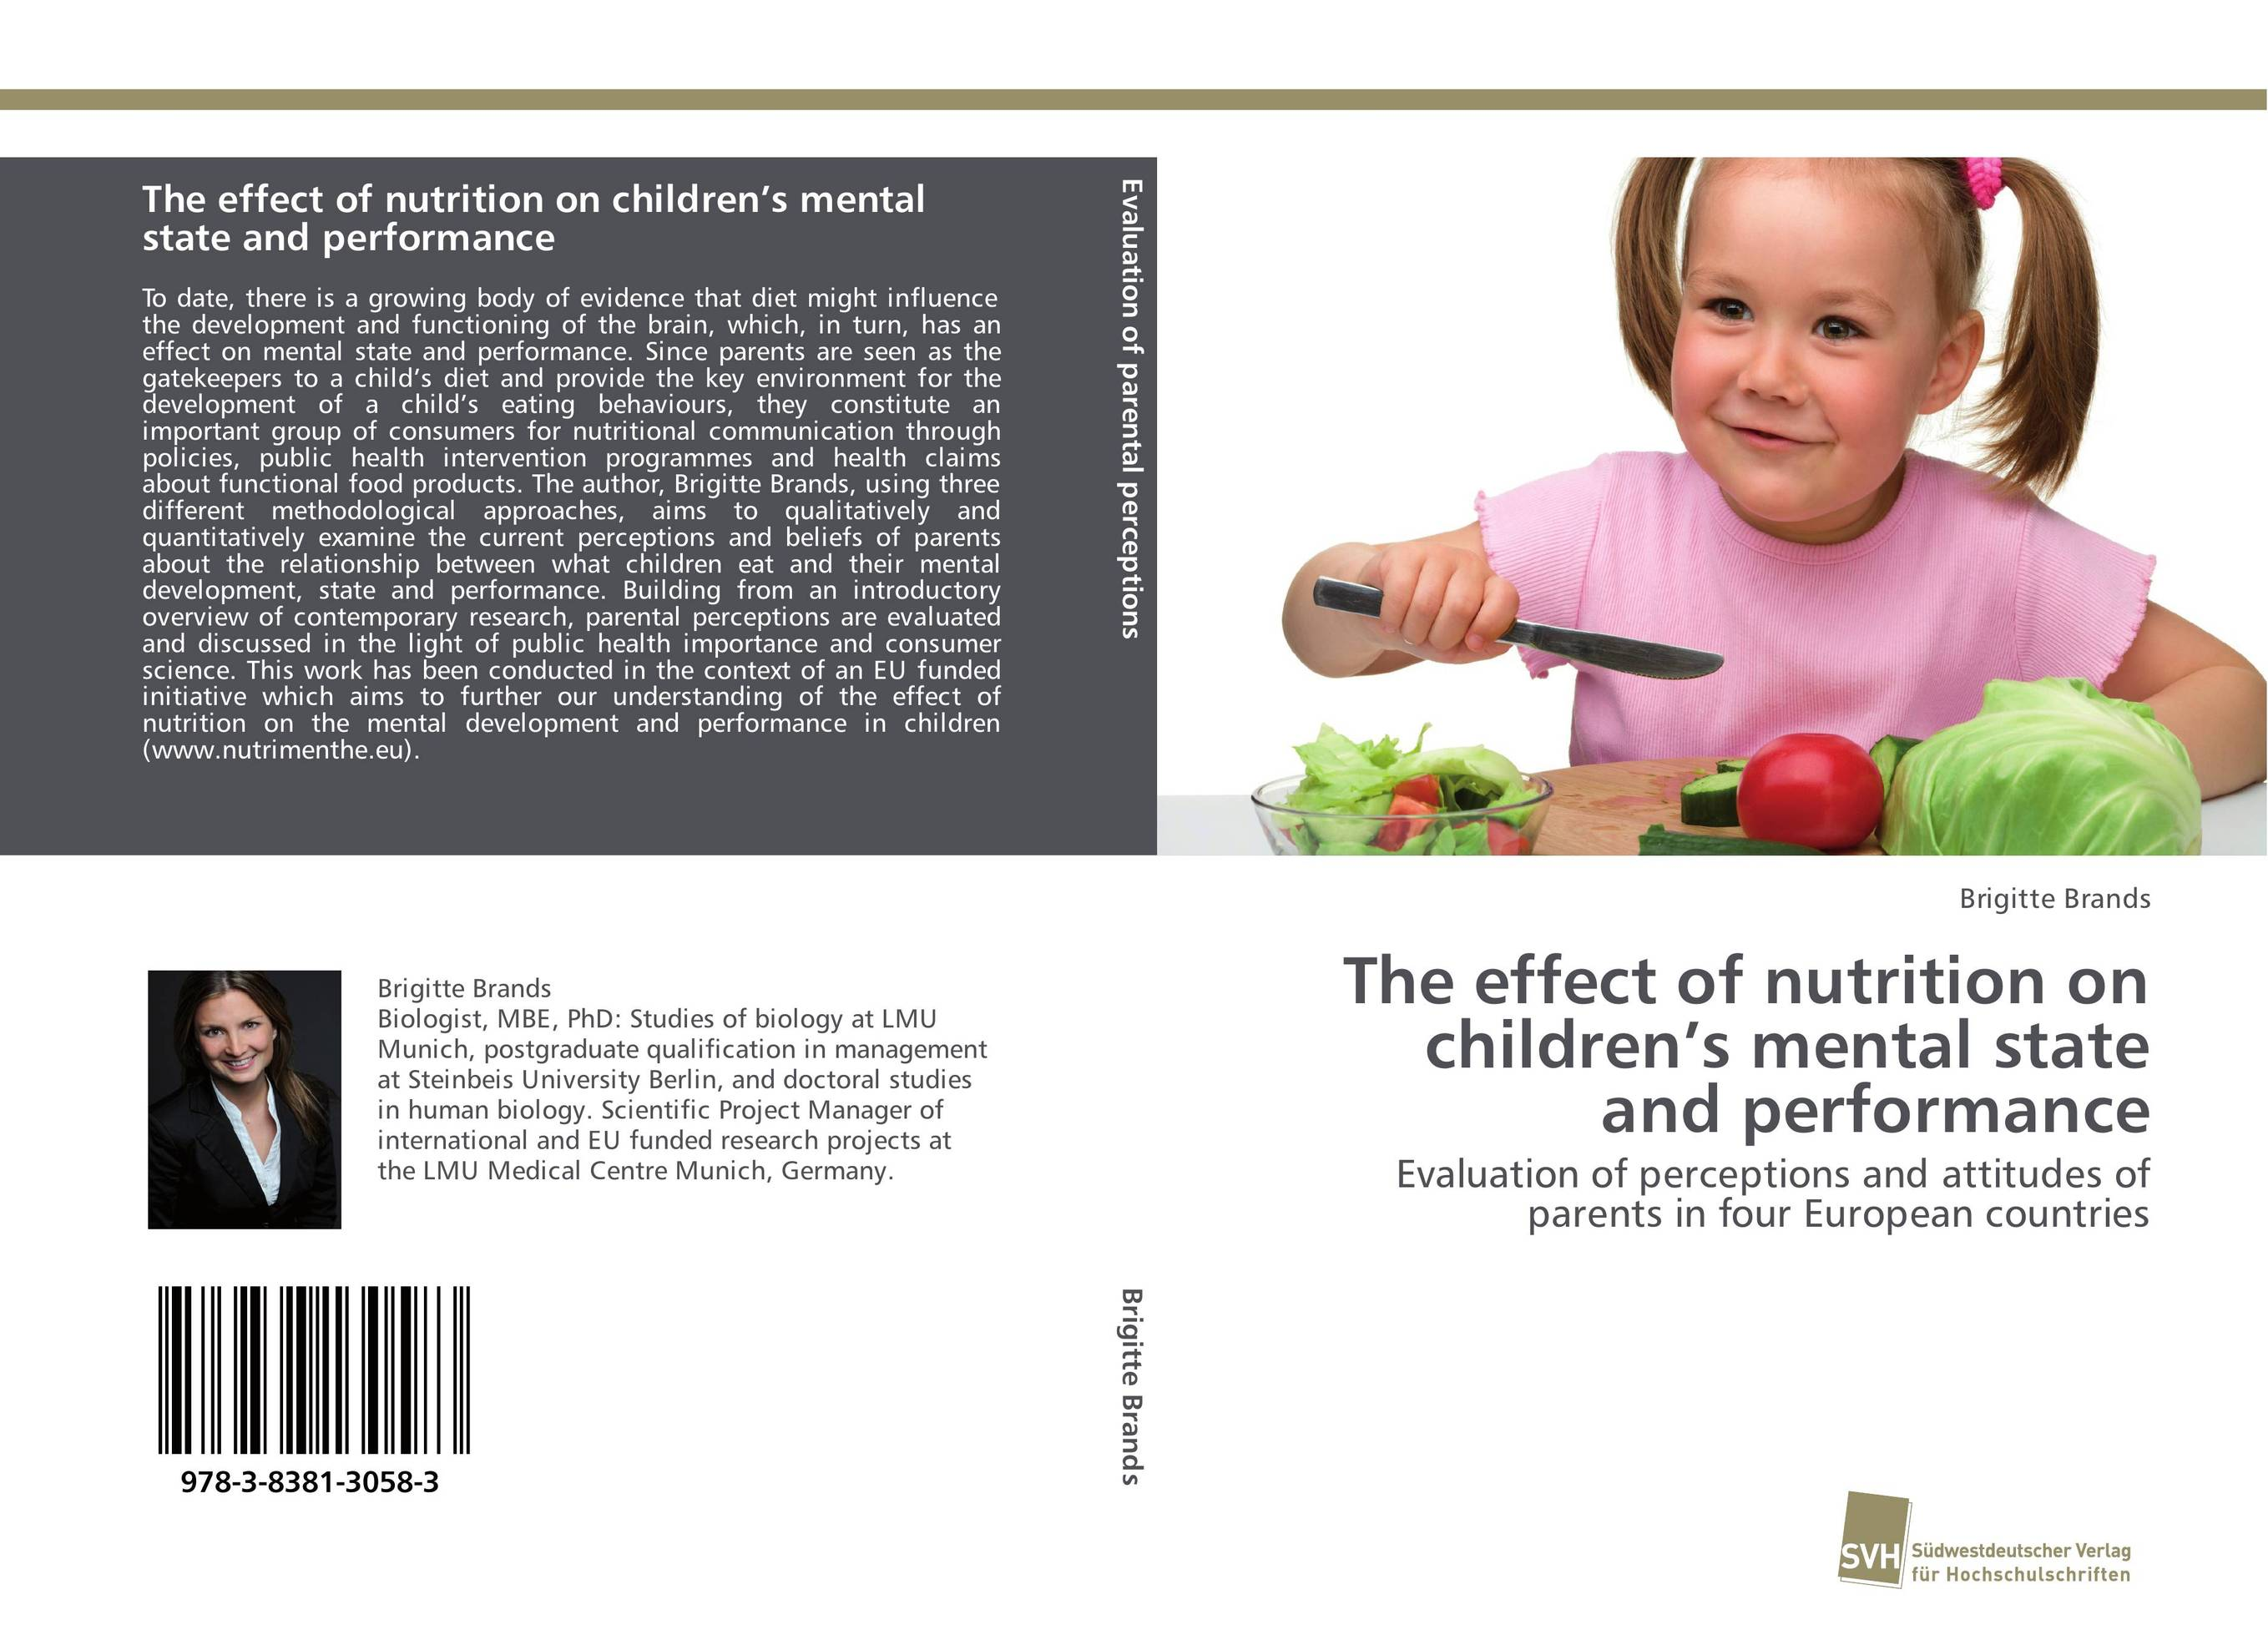 The effect of nutrition on children's mental state and performance affair of state an